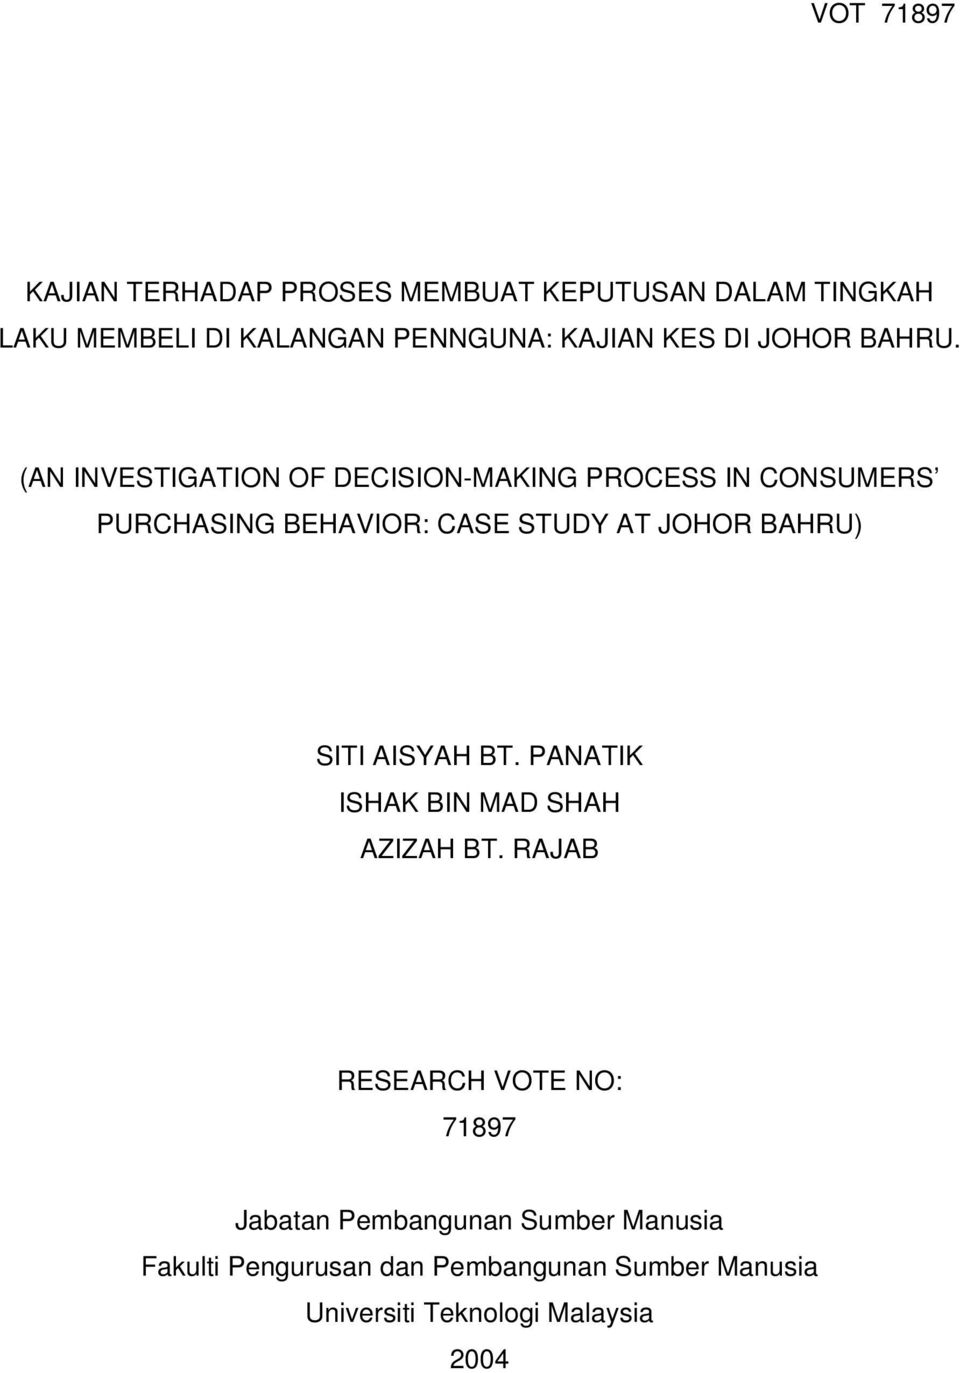 (AN INVESTIGATION OF DECISION-MAKING PROCESS IN CONSUMERS PURCHASING BEHAVIOR: CASE STUDY AT JOHOR BAHRU)